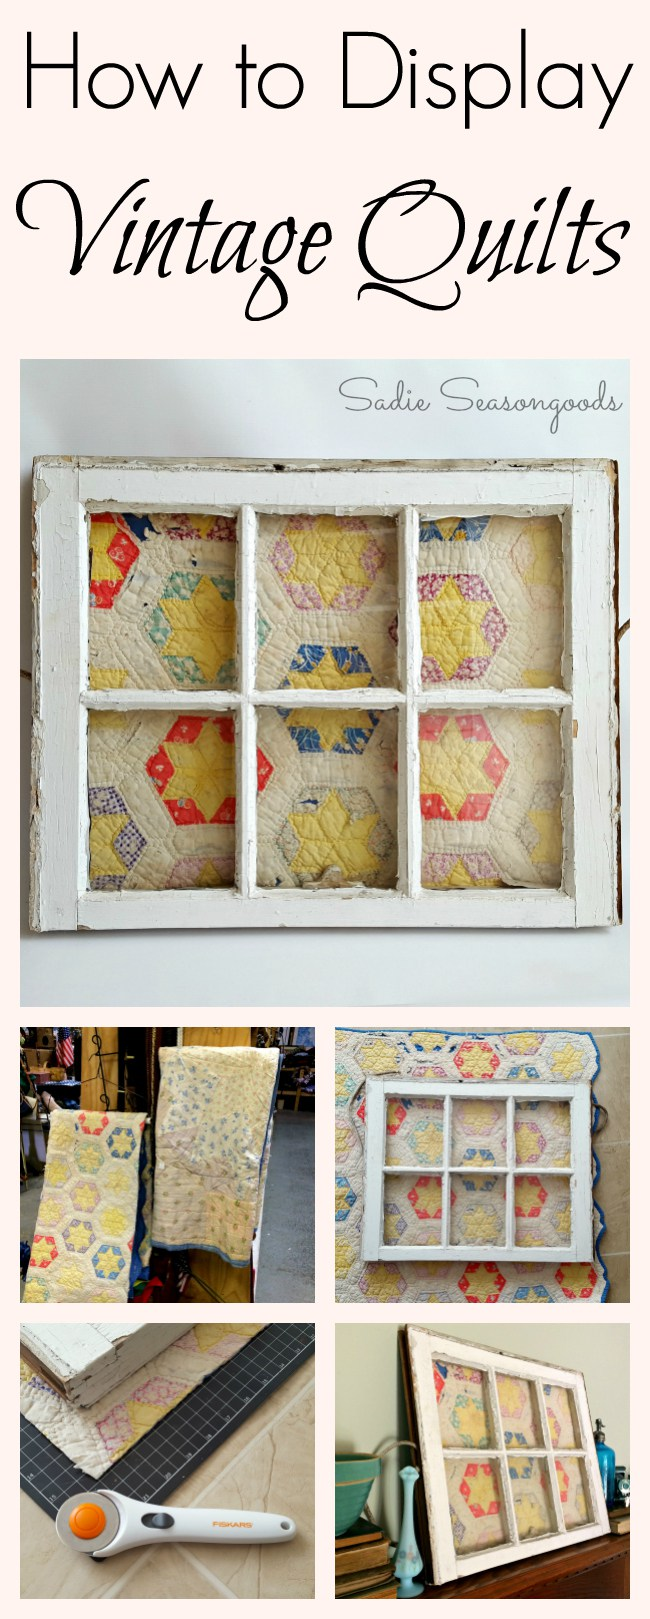 How_to_Display_Vintage_Quilt_with_Antique_Salvaged_Window_frame_by_Sadie_Seasongoods